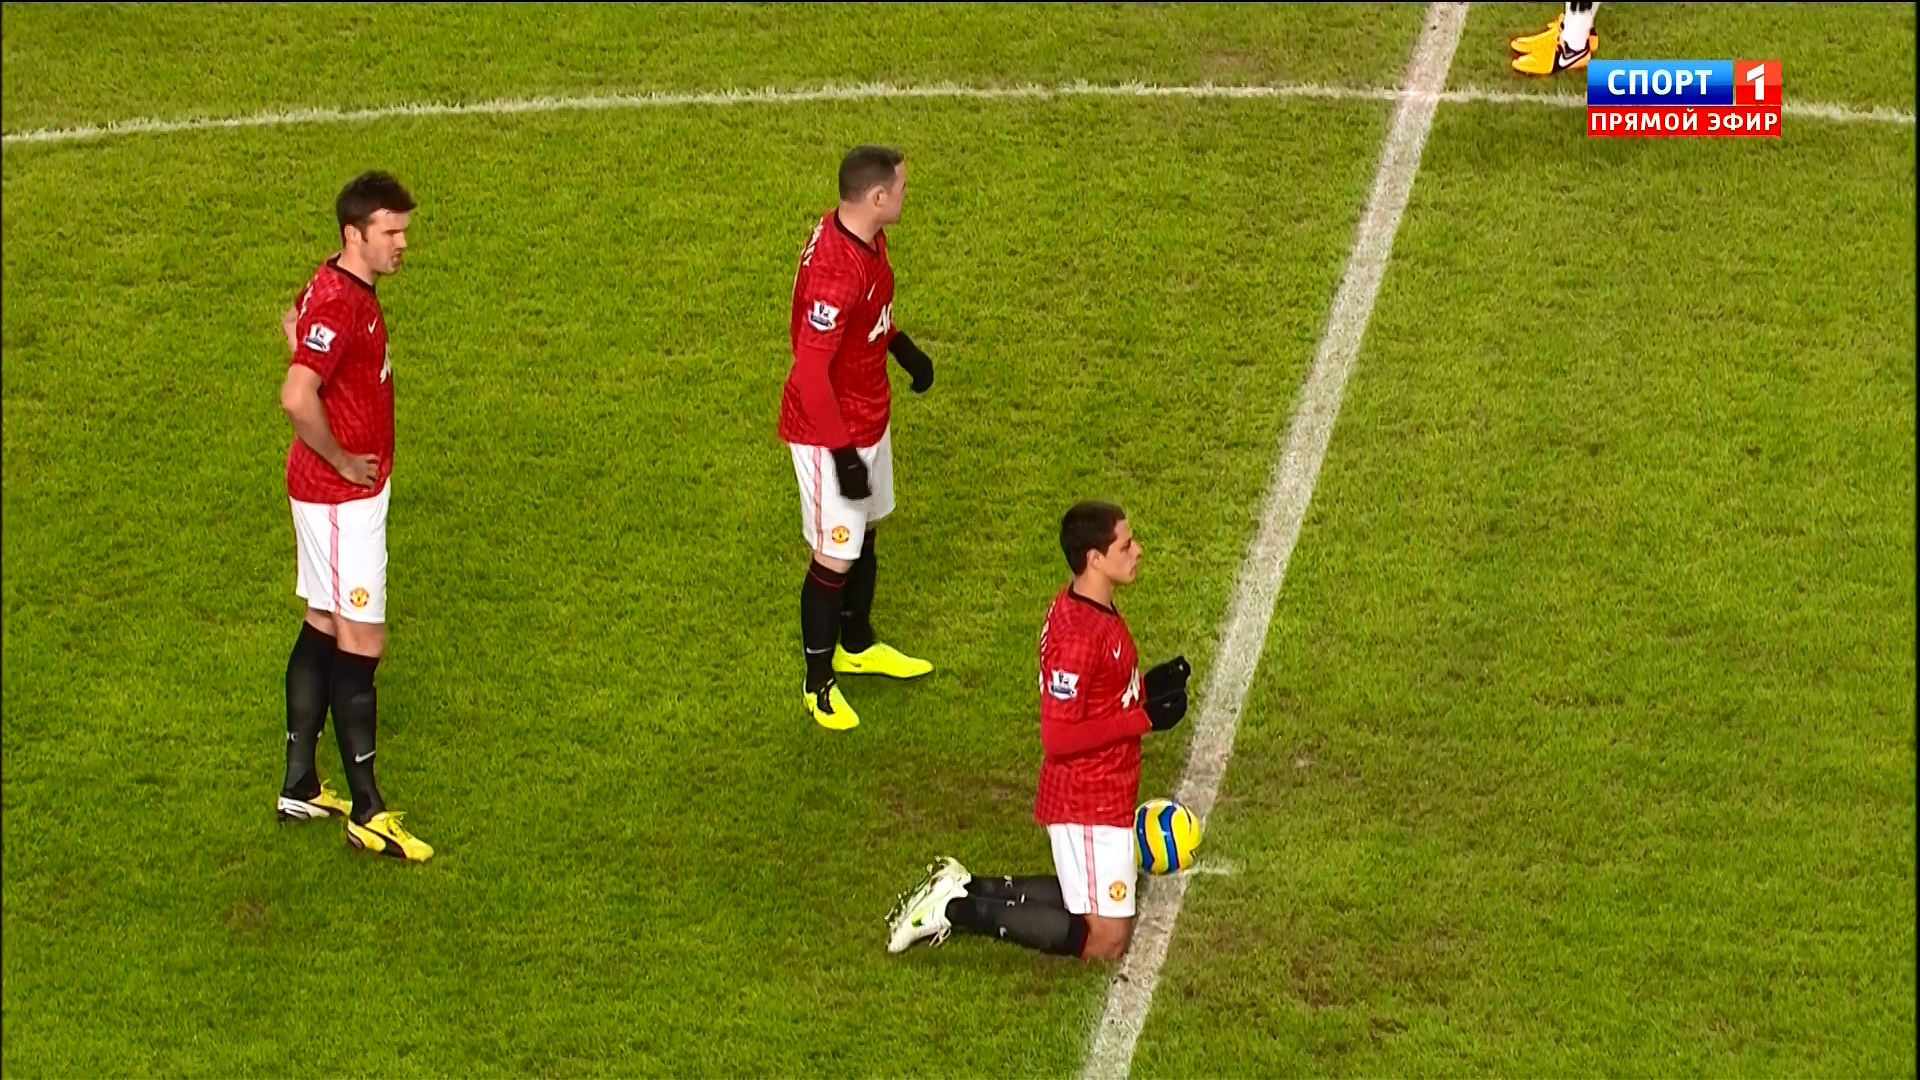 FA CUP - Manchester United - Fulham  Full Match 